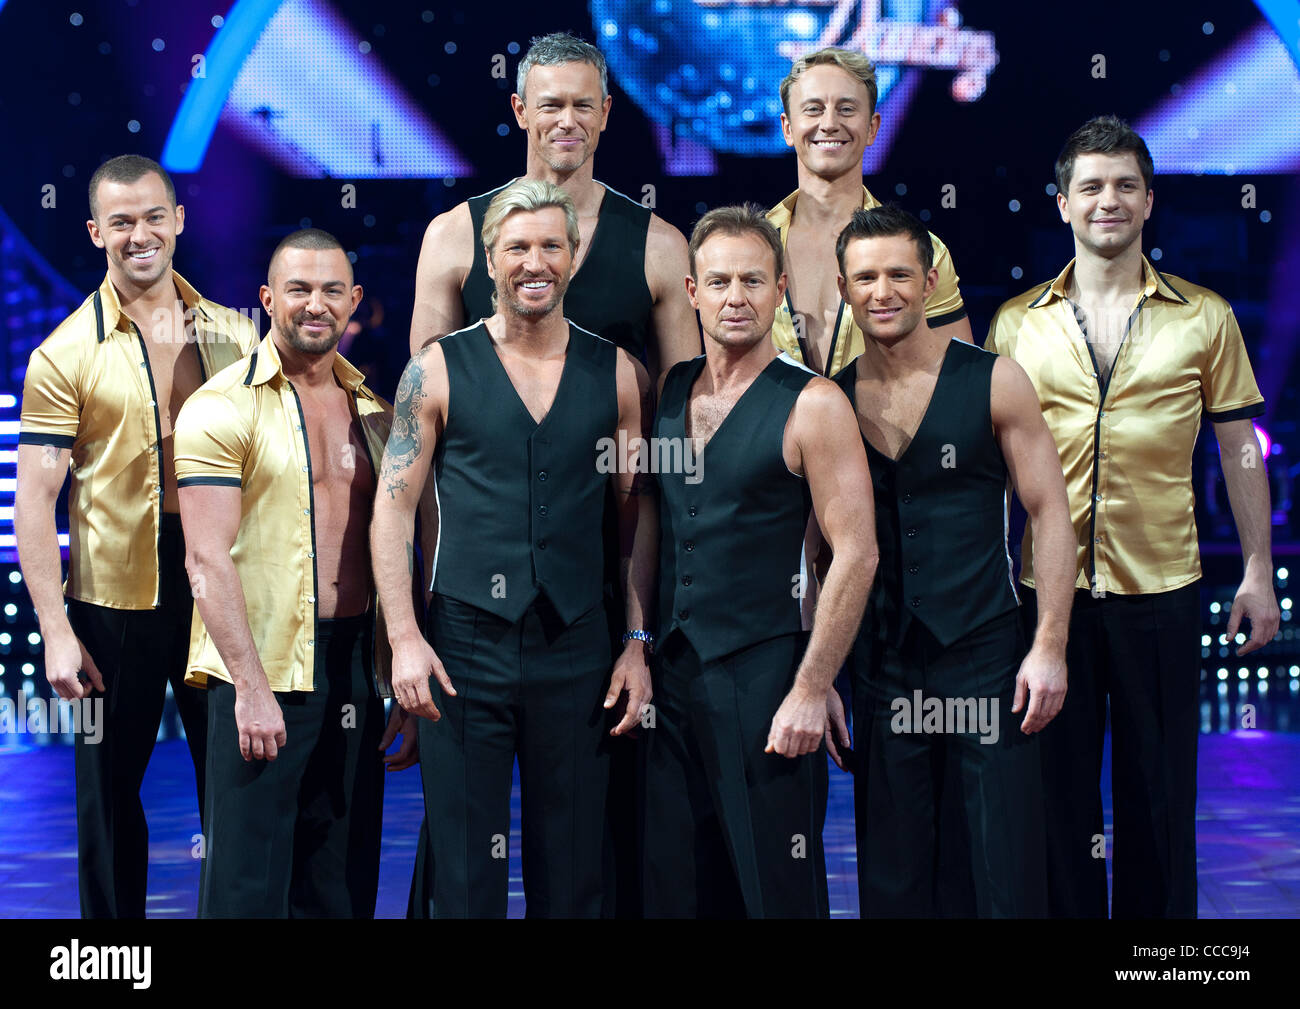 All the boys at the Strictly Come Dancing photo shoot at the national indoor arena in Birmingham. 19th Jan 2012 - Stock Image